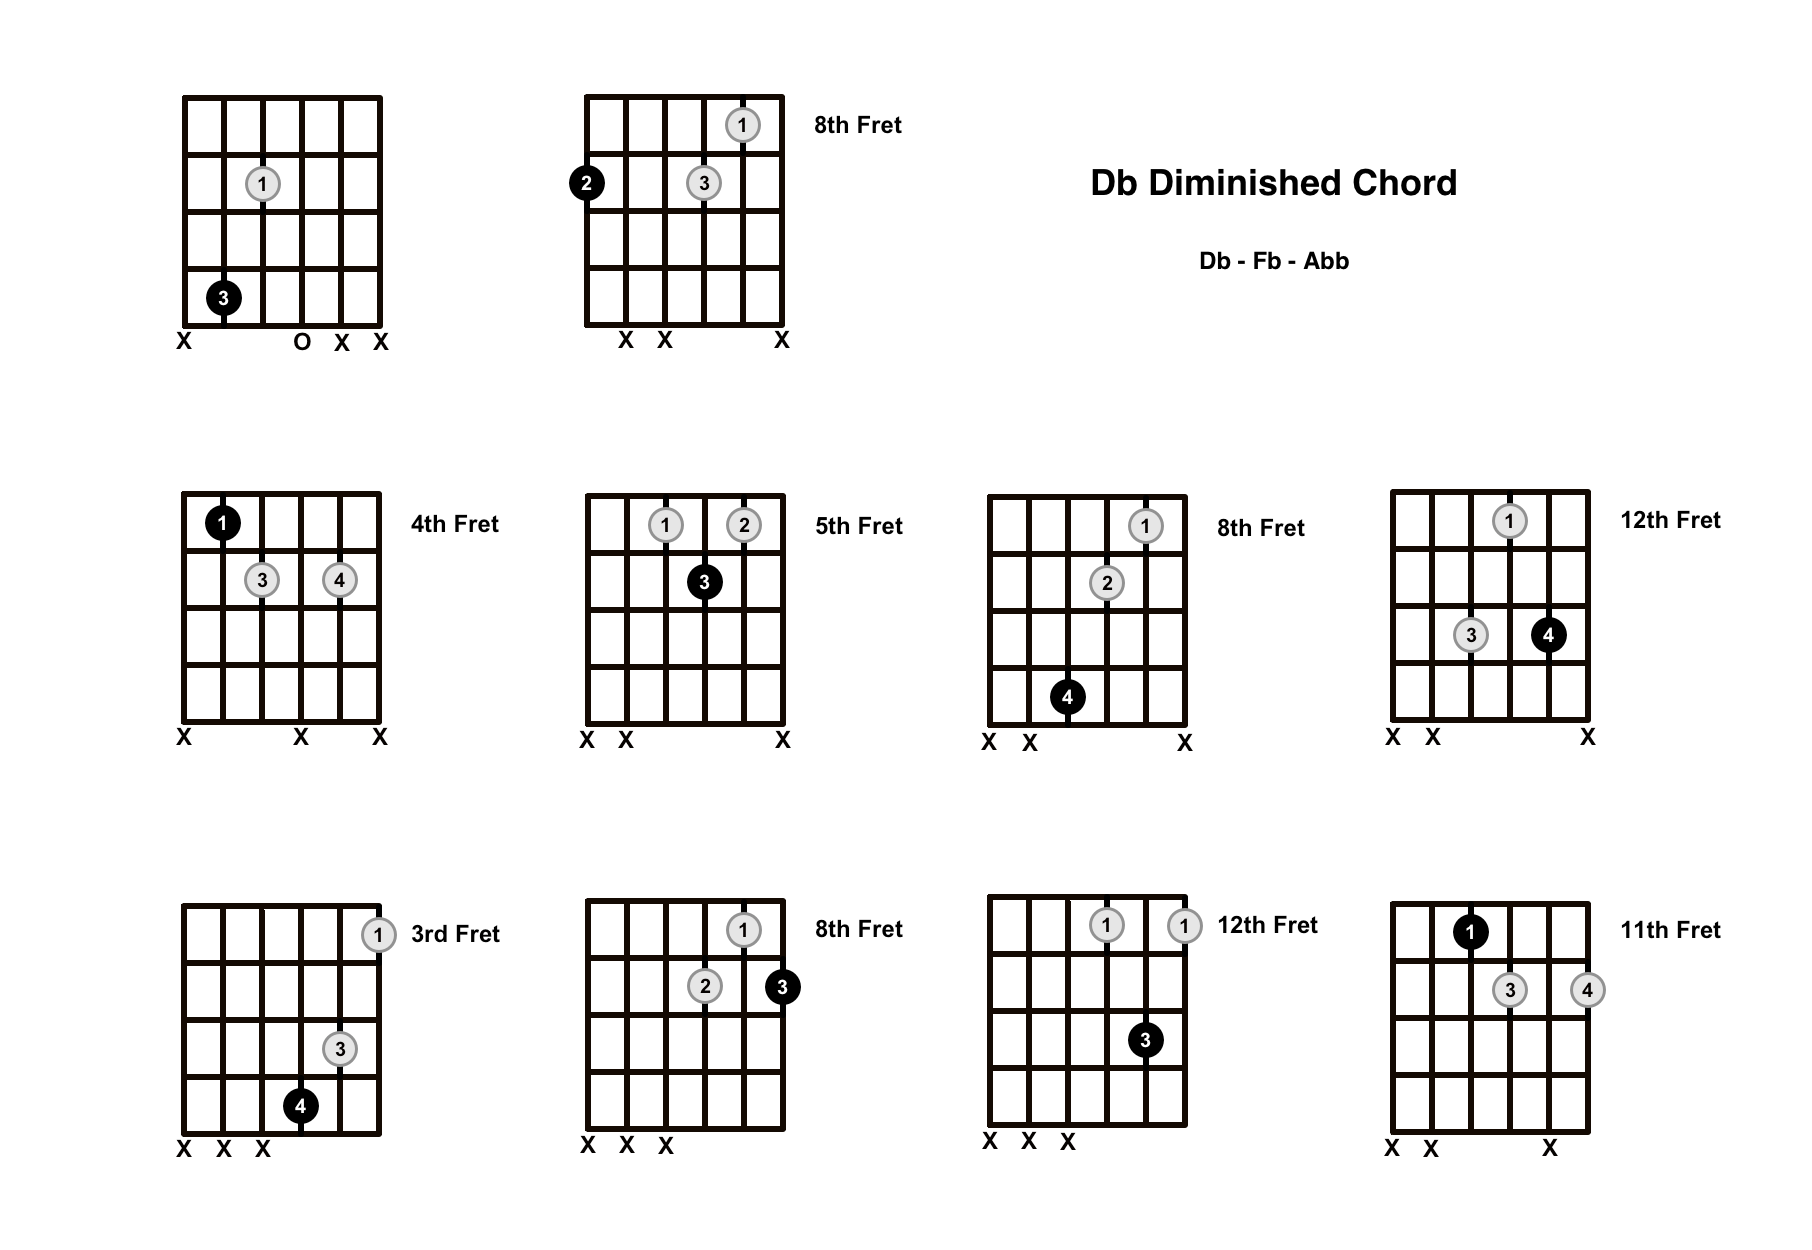 D Flat Diminished Chord on the Guitar (Db dim) – Diagrams, Finger Positions, Theory